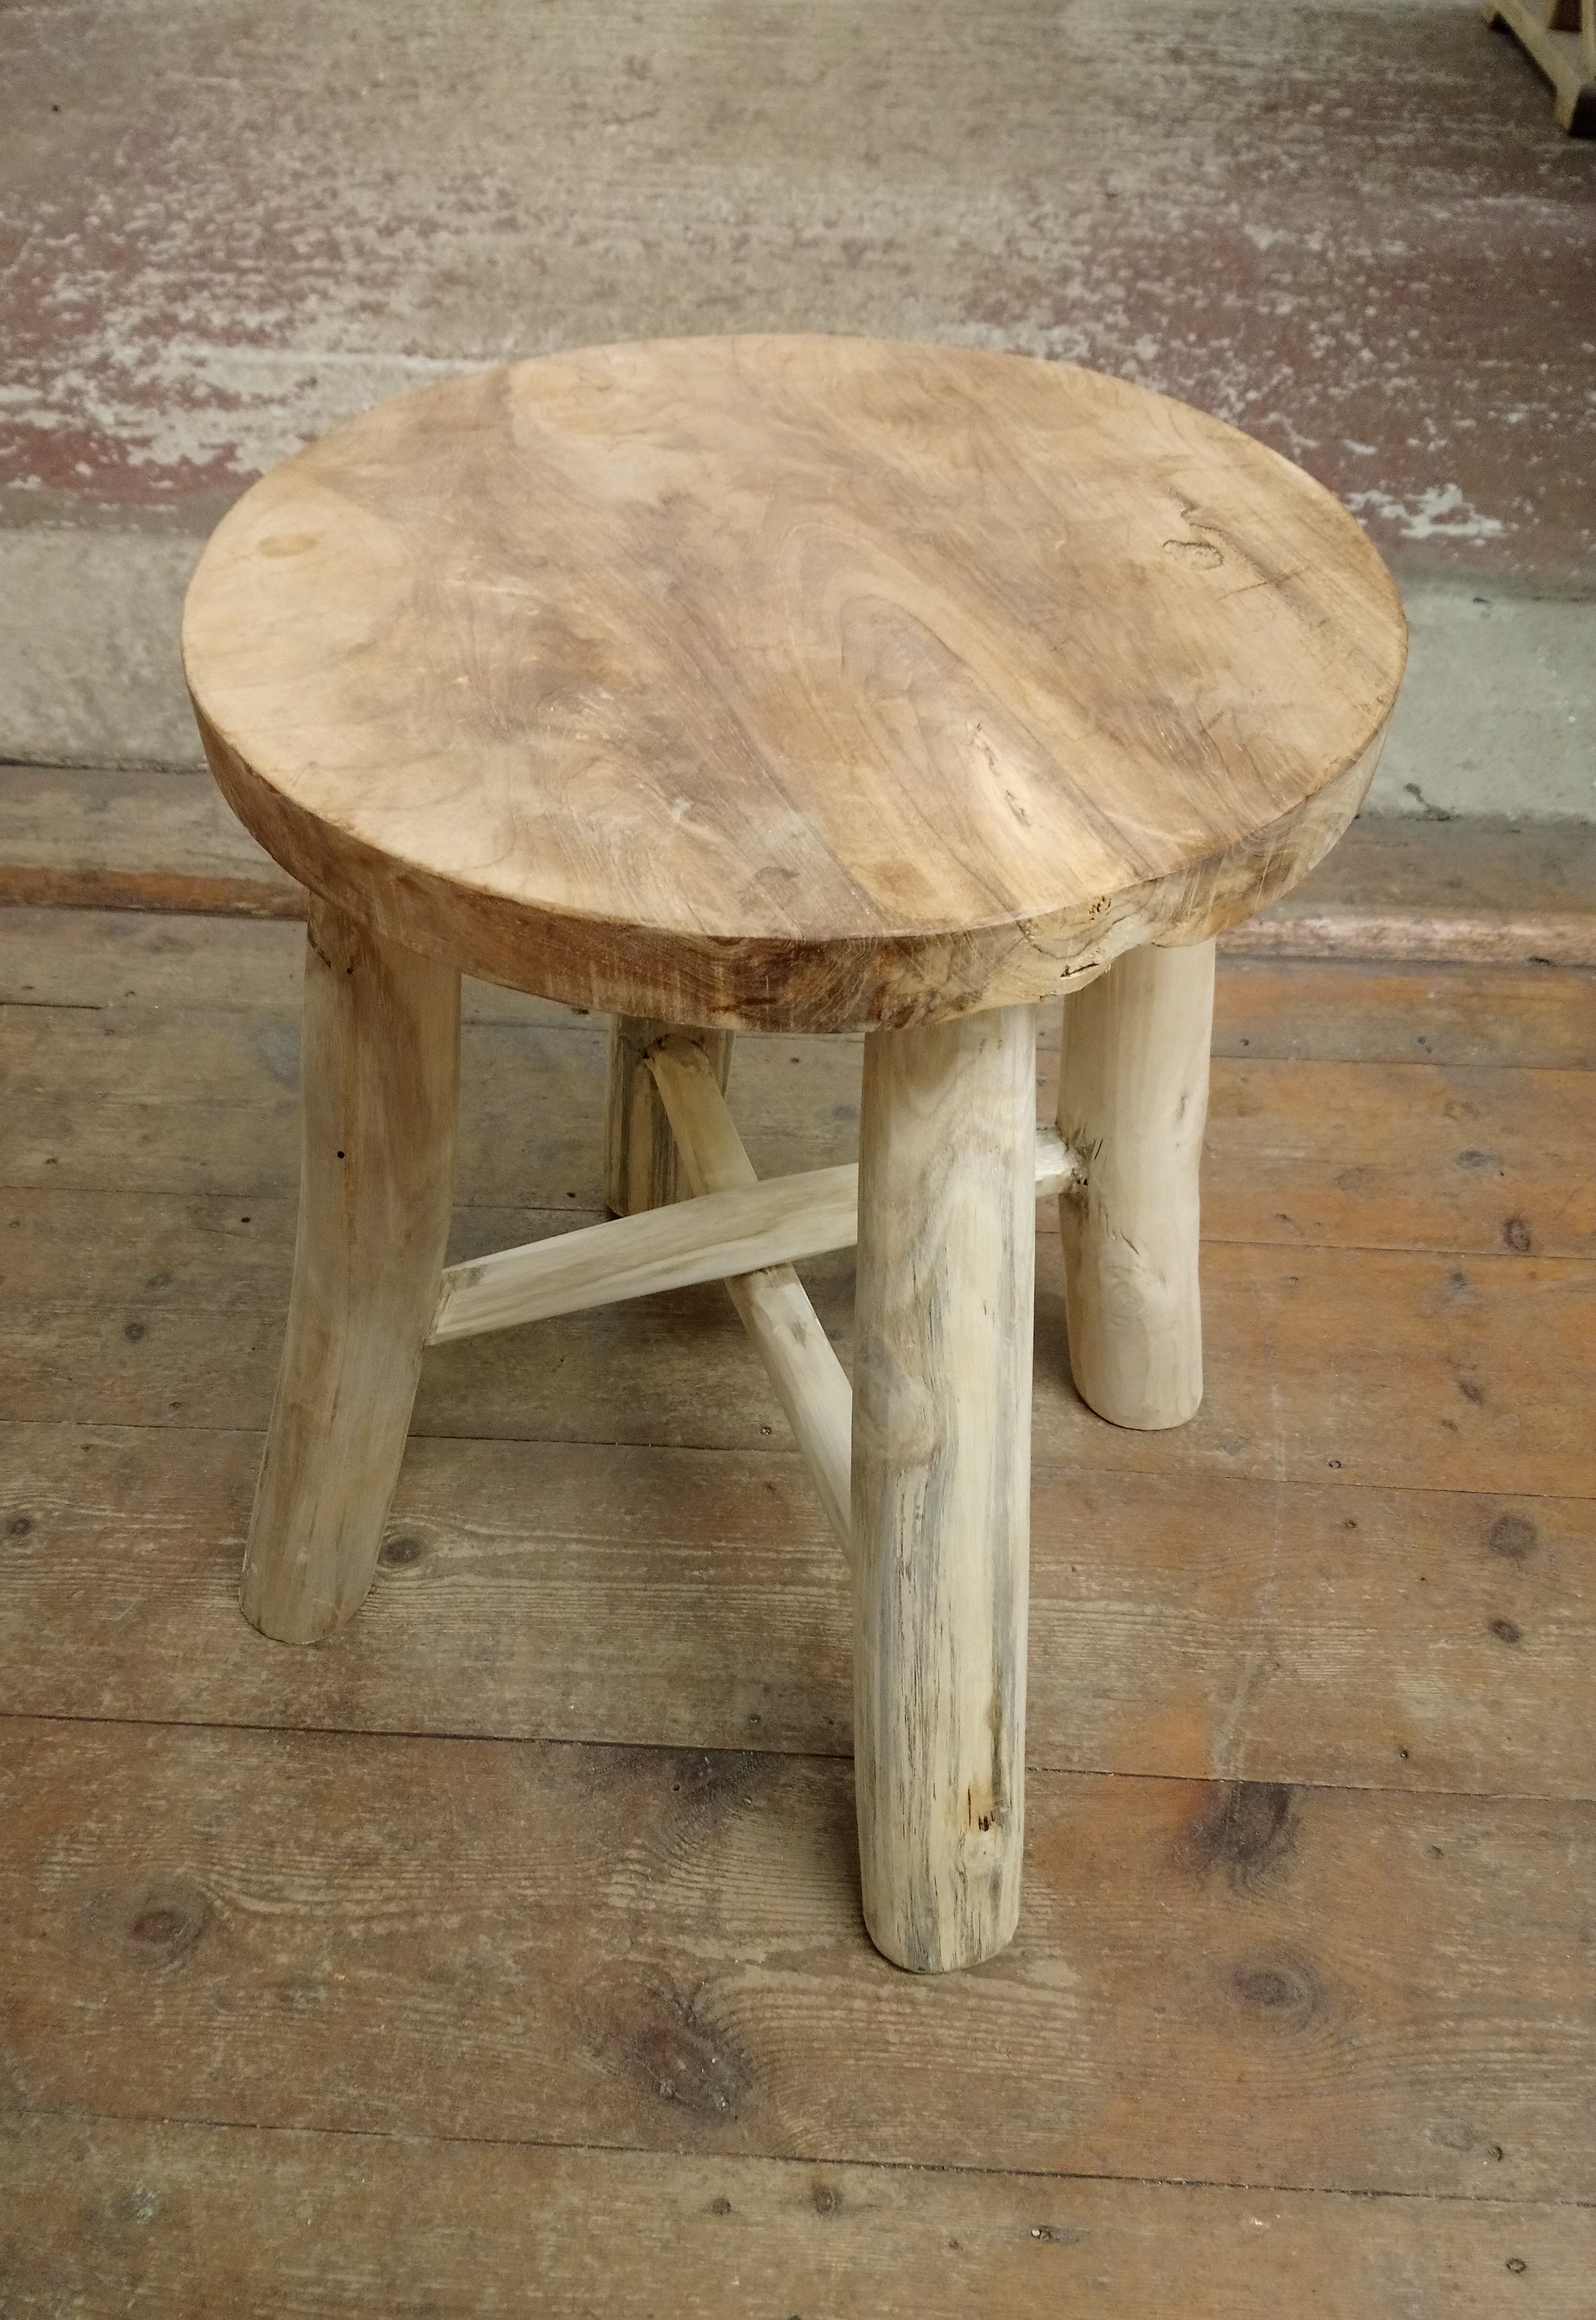 """<p>Wooden Stool</p><p>Top 14"""" x 18"""" High</p><p>x4 Available</p>"""